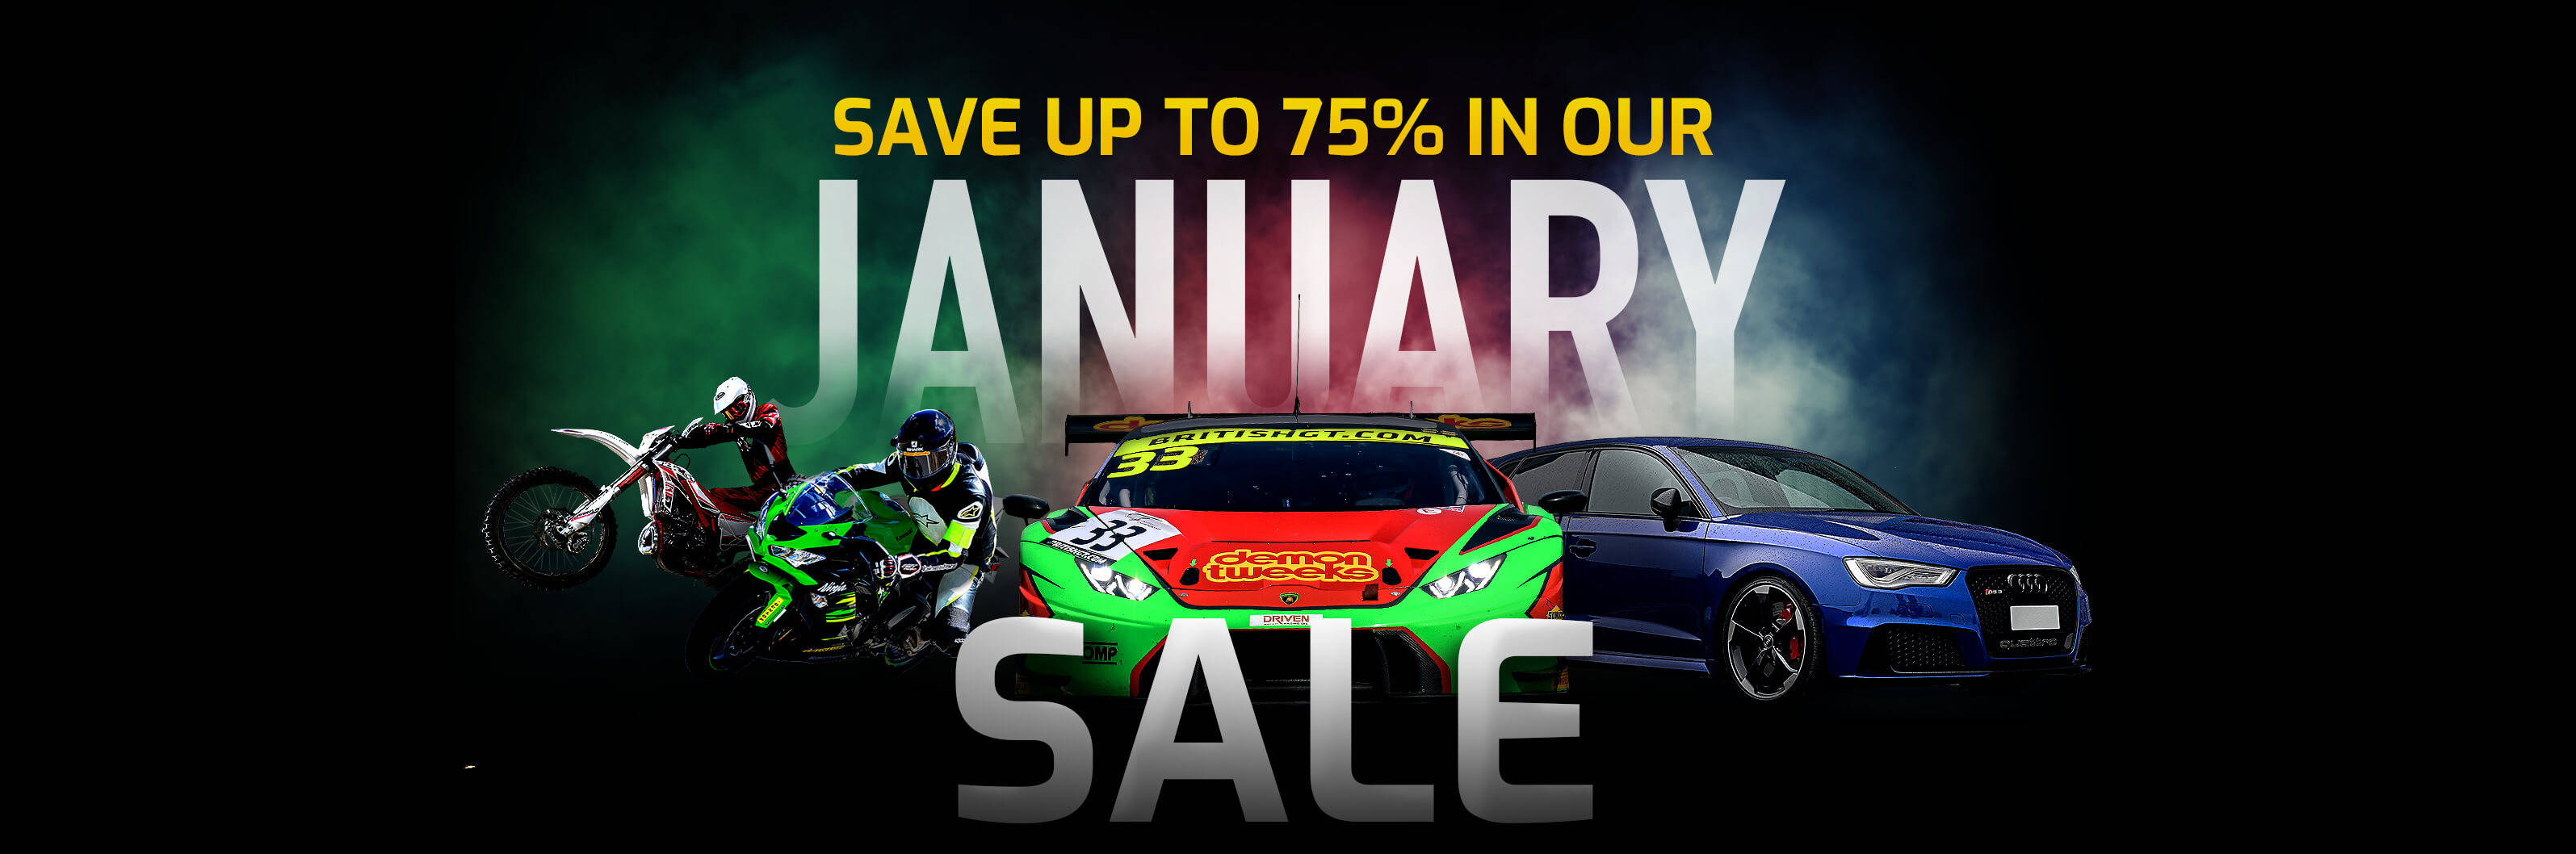 Save up to 75% in our Boxing Day Sale